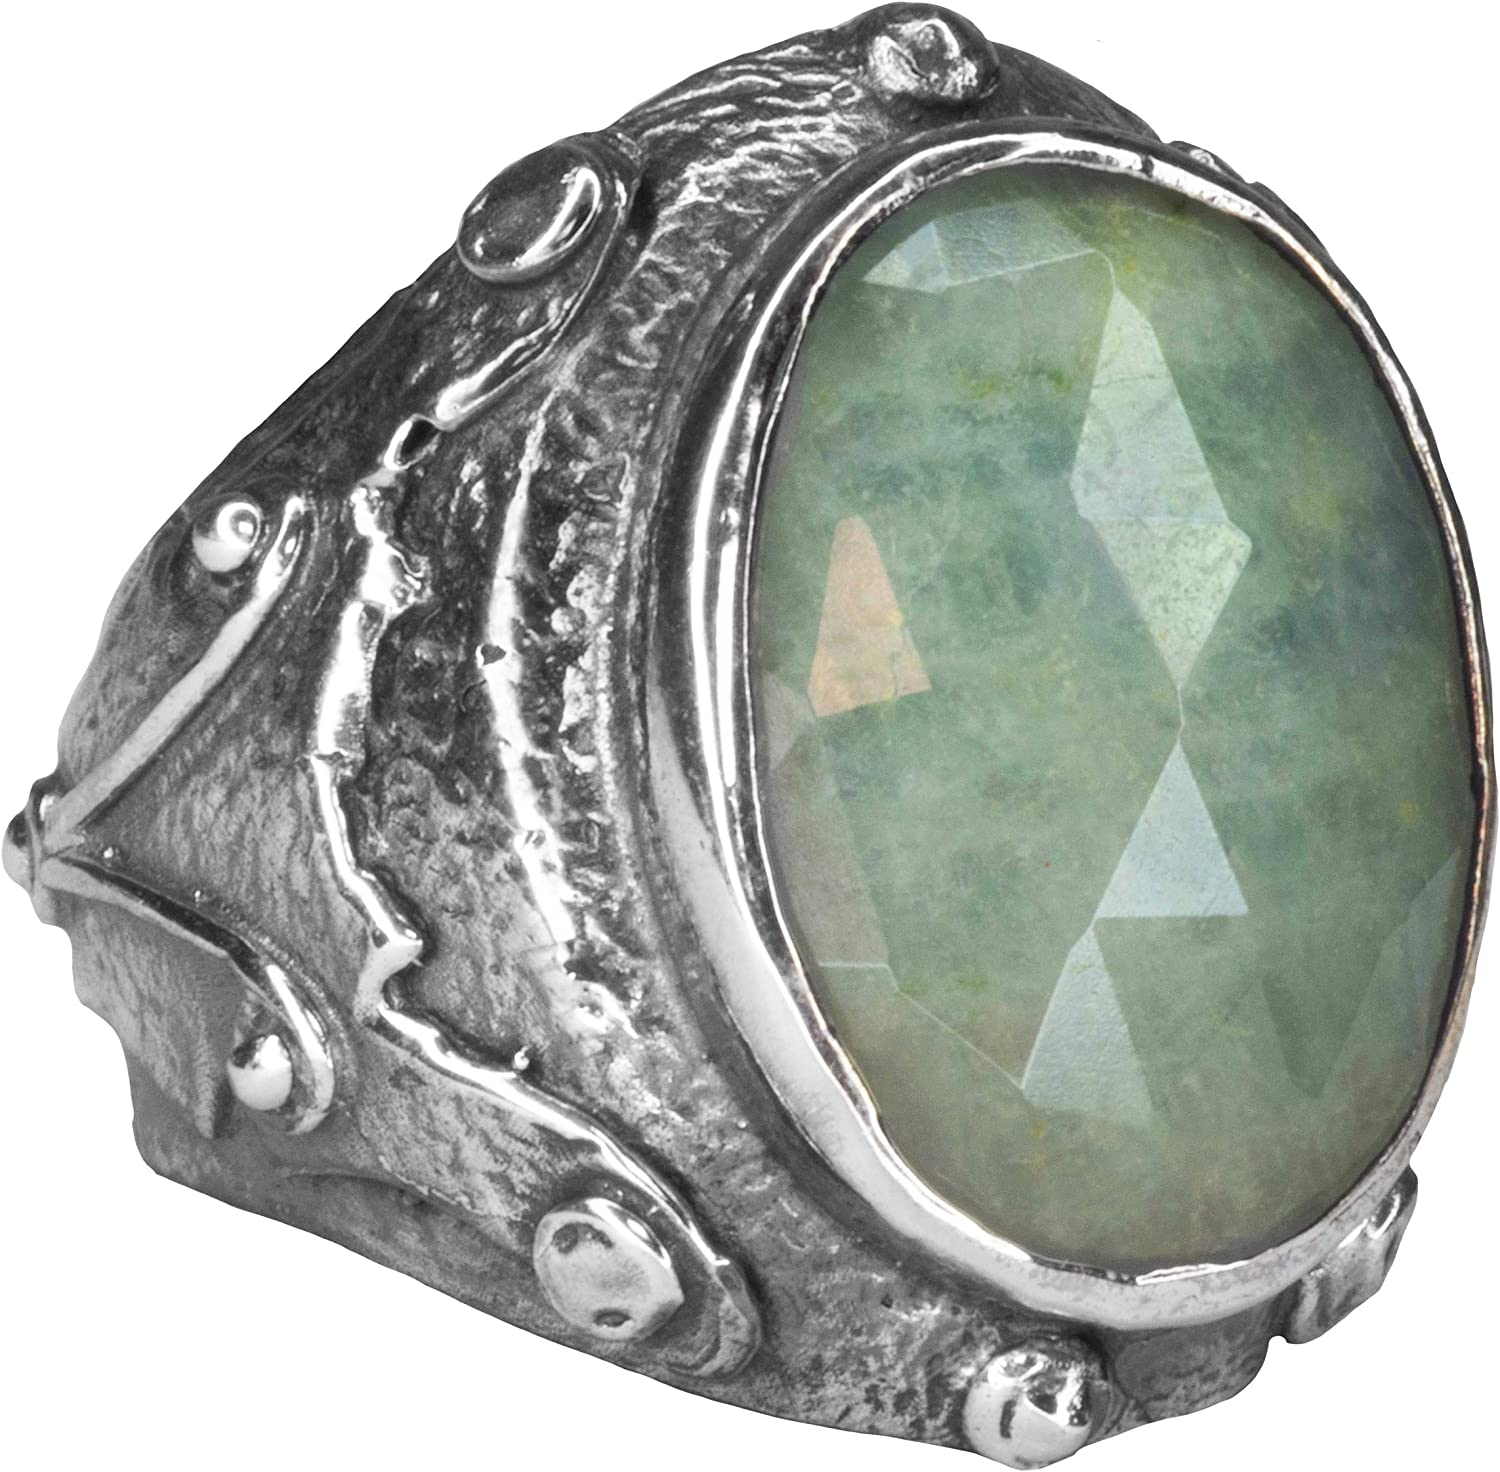 Falcon Jewelry 925 Sterling Silver Mens Ring Antique Ring Free Express Shipping Aquamarine Natural Gemstone